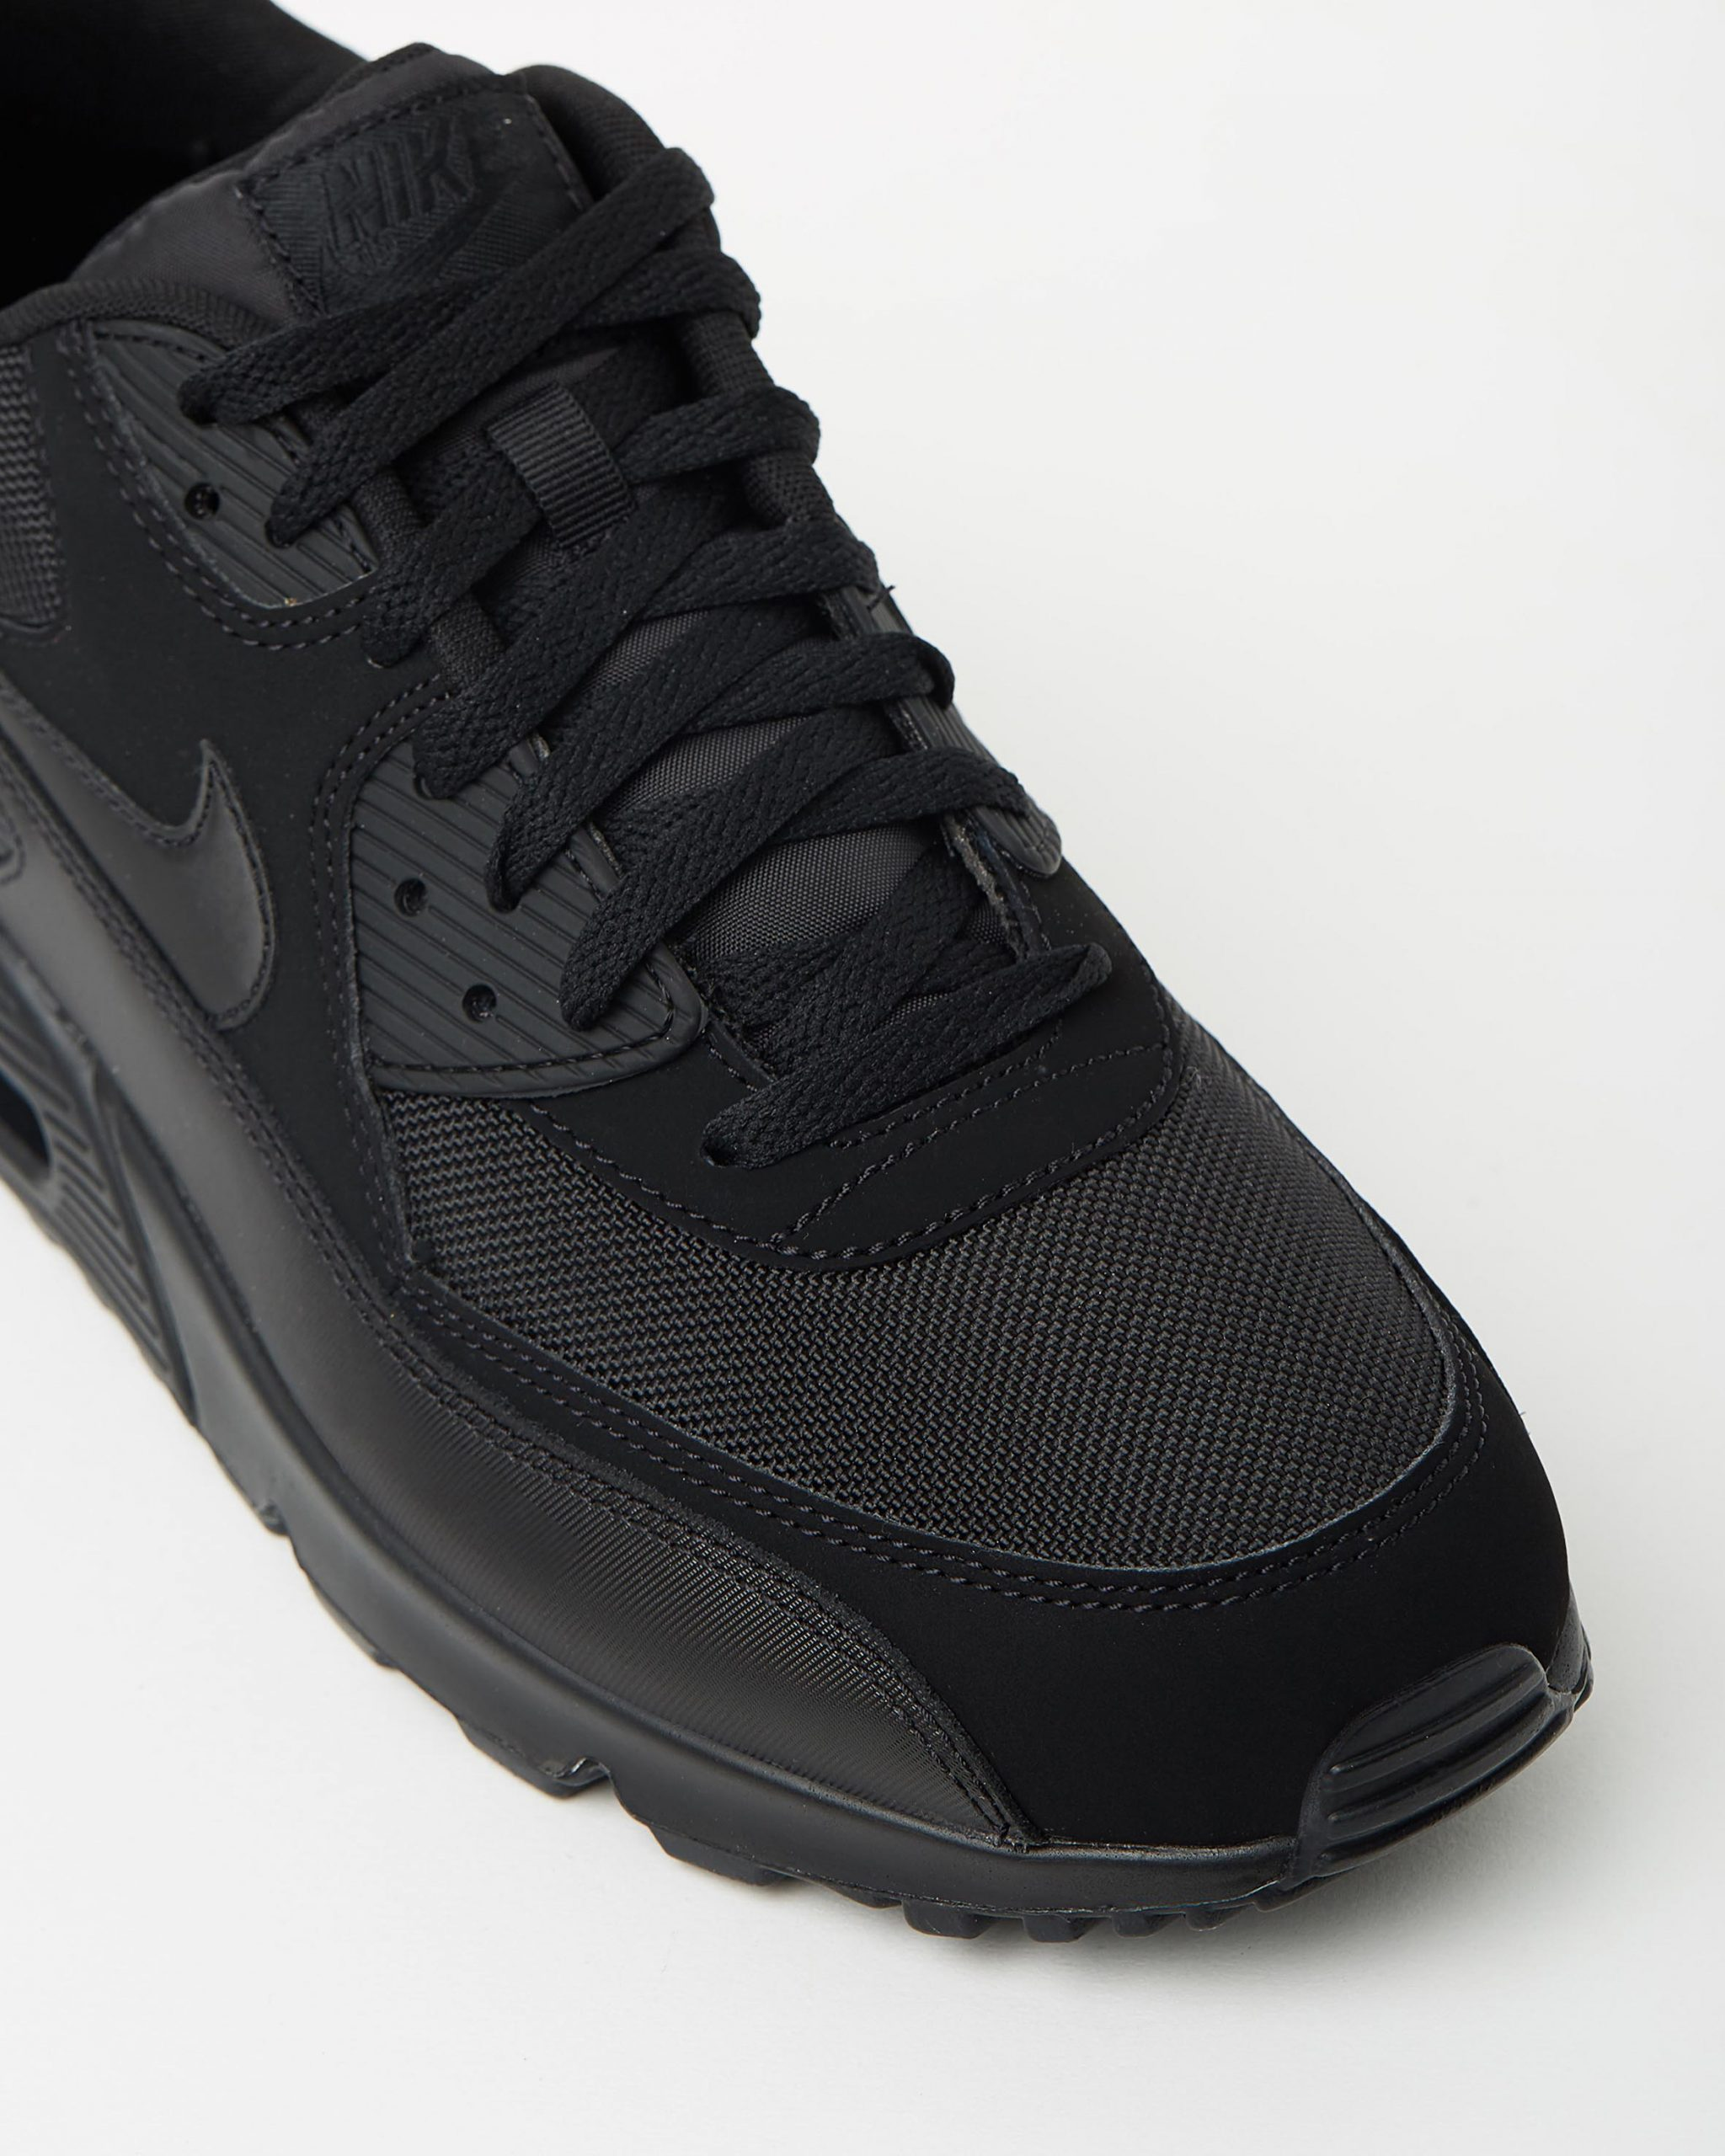 Nike Air Max 90 Essential Black 95gallery Com